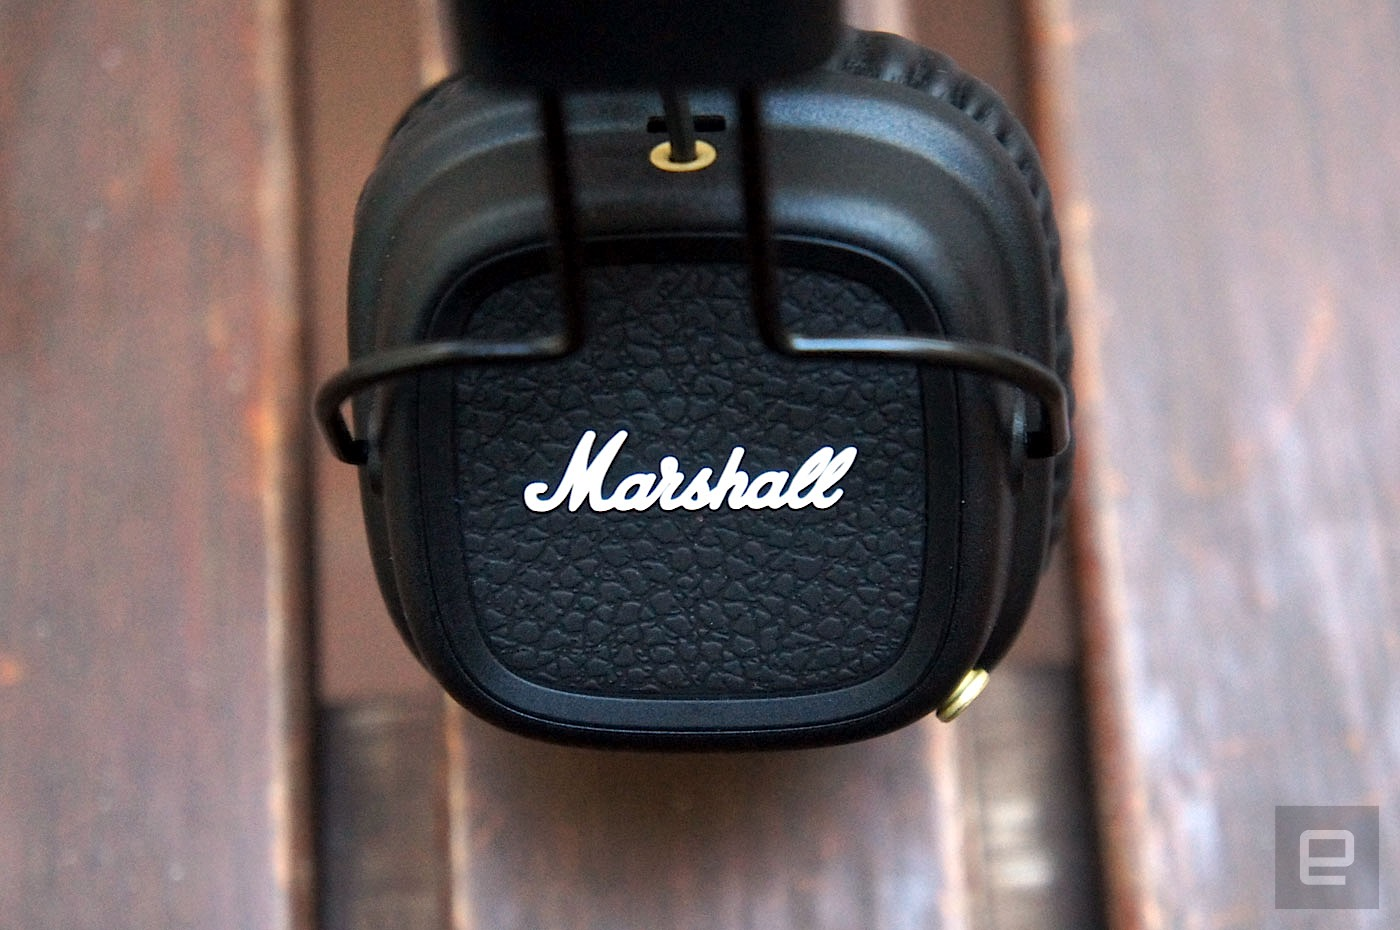 marshall 39 s wireless headphones rock all night and day long. Black Bedroom Furniture Sets. Home Design Ideas